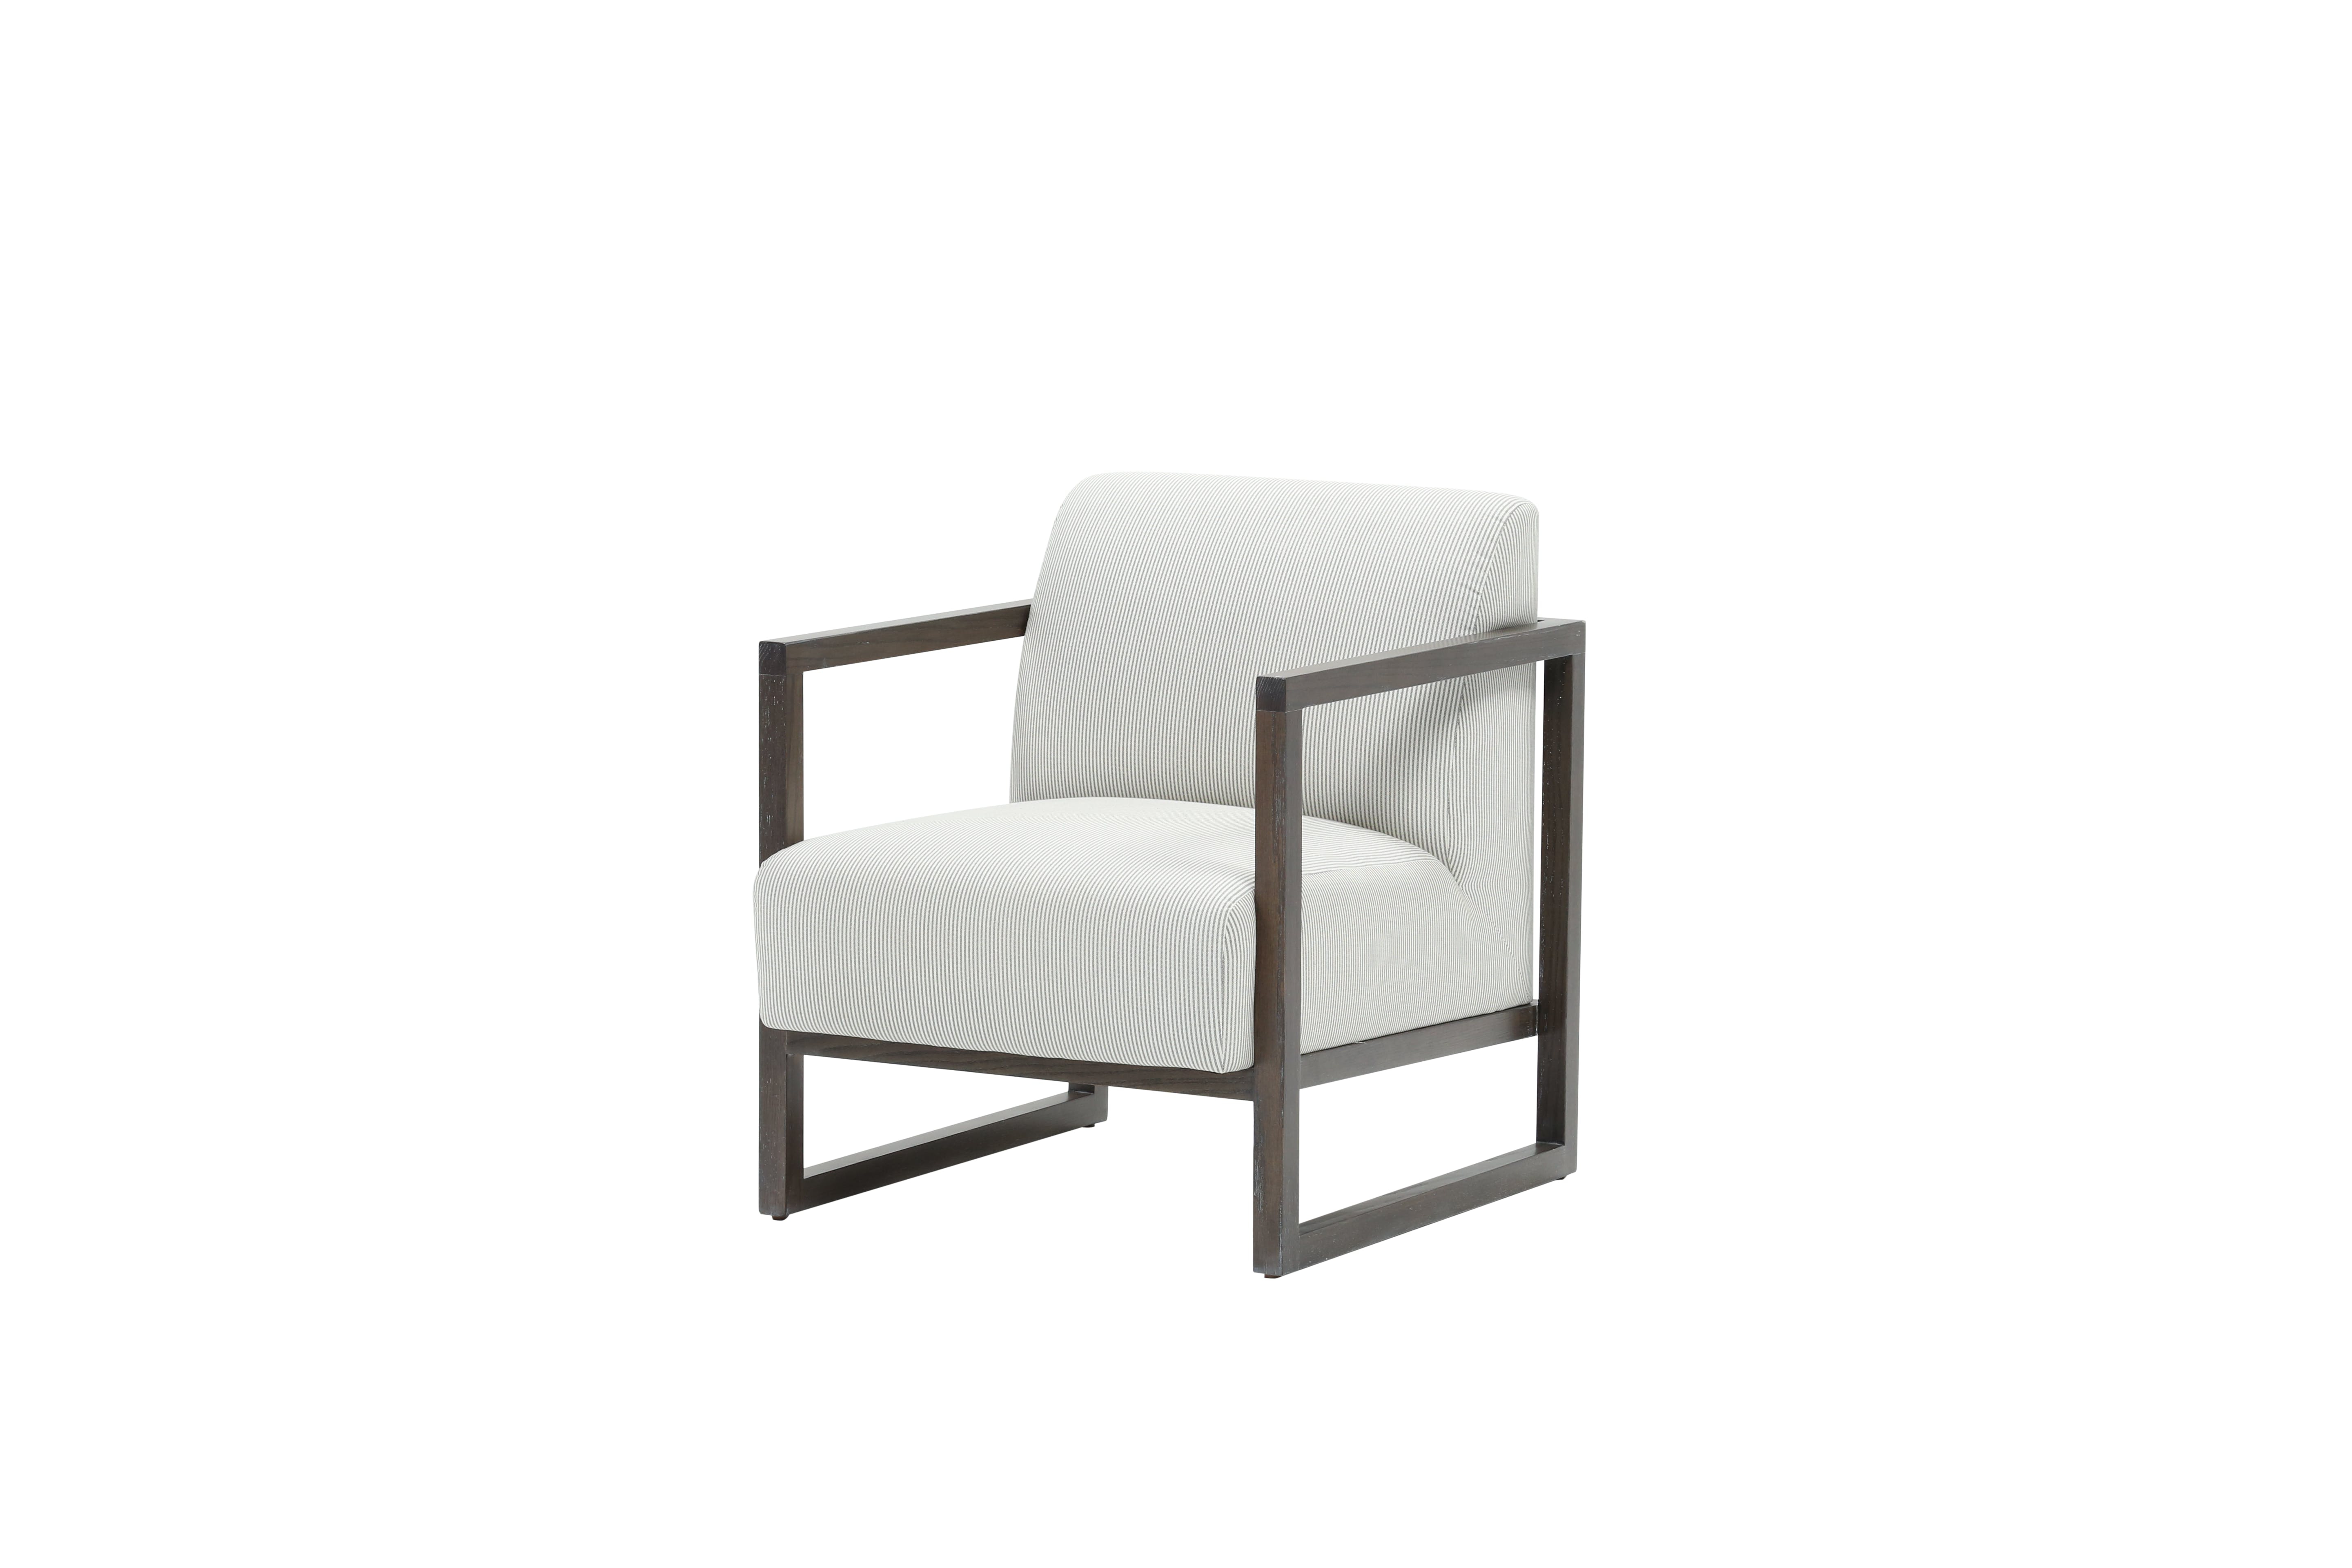 Matteo Arm Sofa Chairs By Nate Berkus And Jeremiah Brent Pertaining To Most Current Nate Berkus Just Launched A Home Collection With Hubby Jeremiah (View 7 of 20)